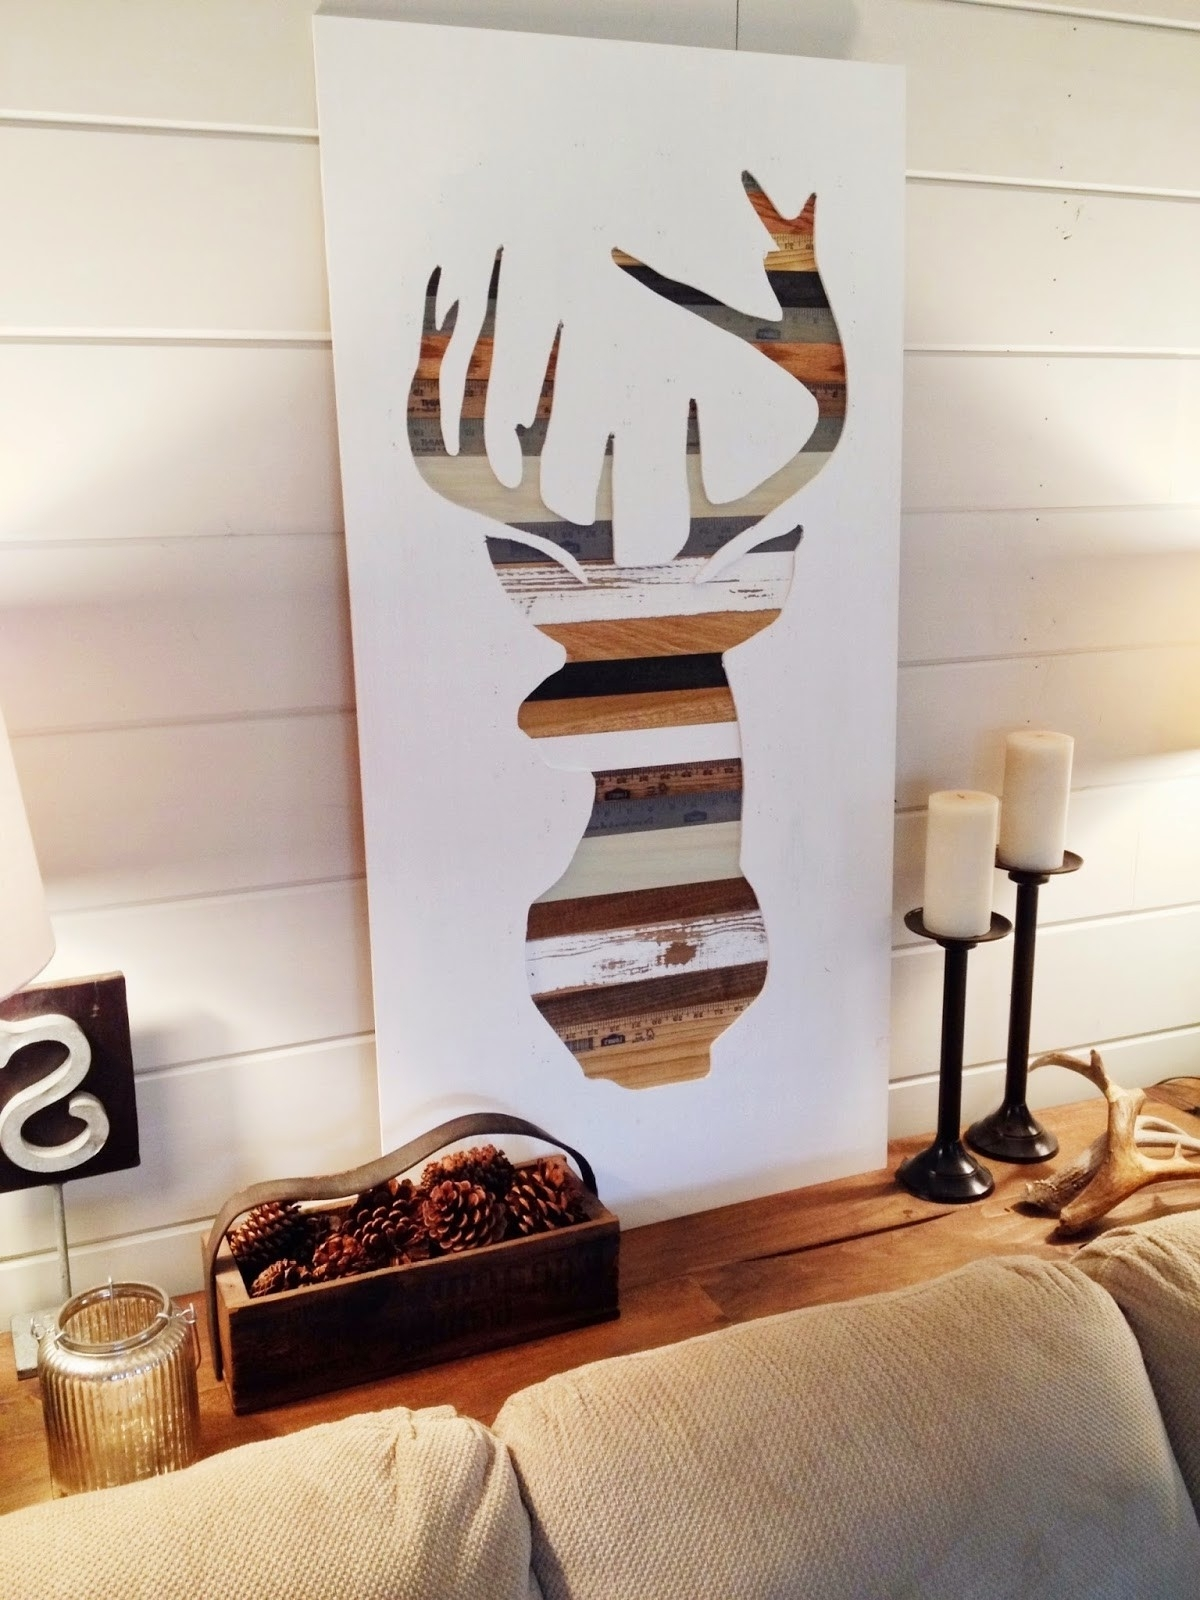 Widely Used Diy Wood Wall Art Inside Deer Silhouette Wall Art All Wood Decor Diy – Jumpstartcoffee (View 18 of 20)